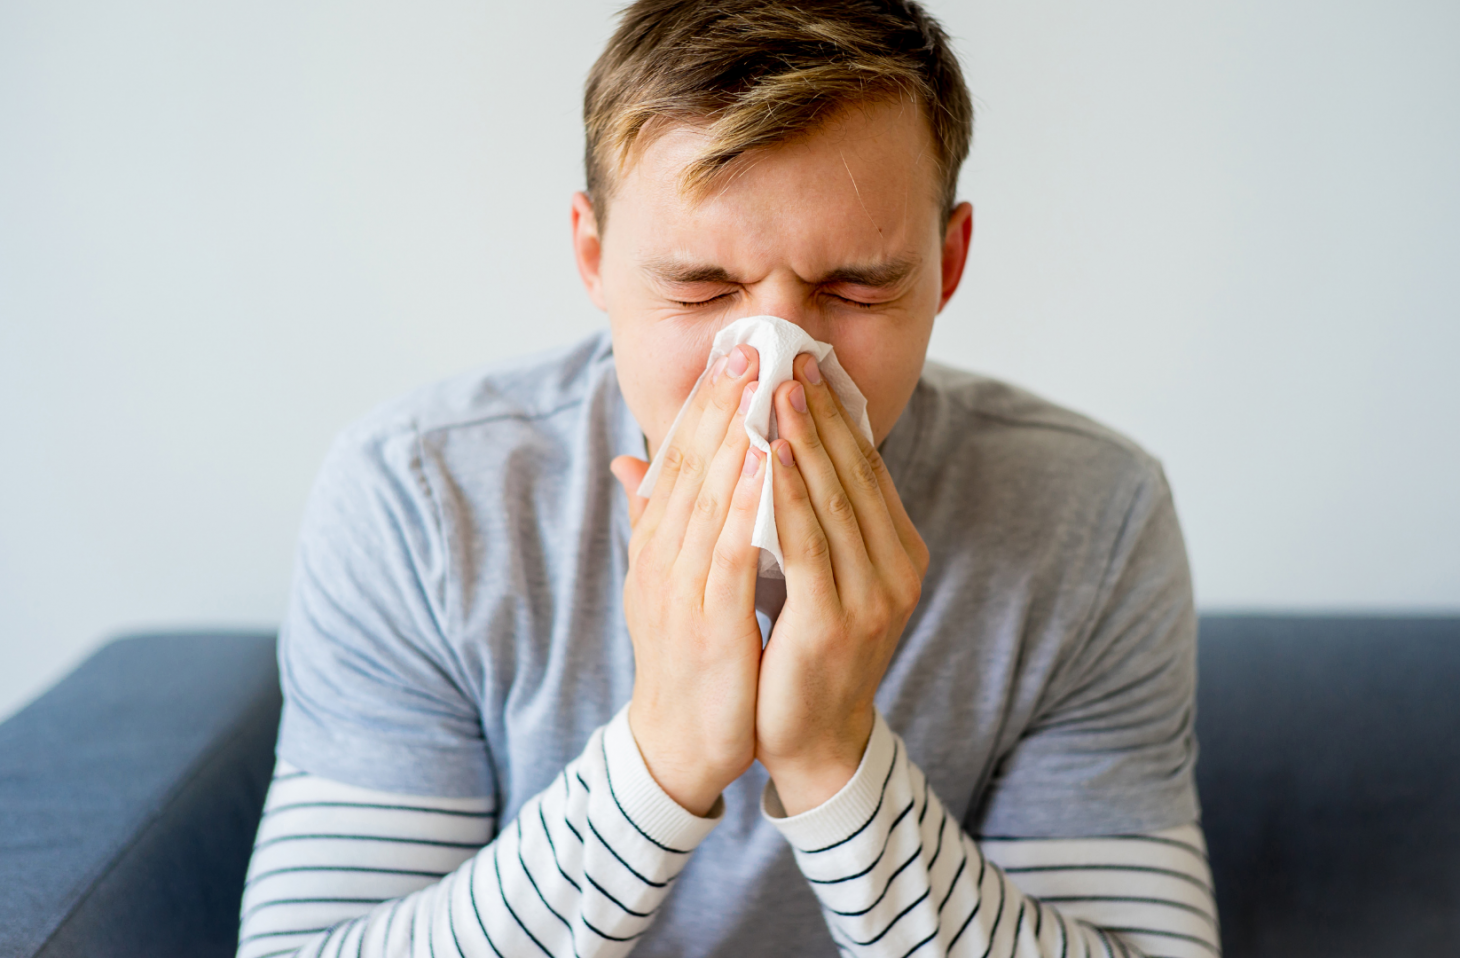 A young man is sneezing into a tissue.